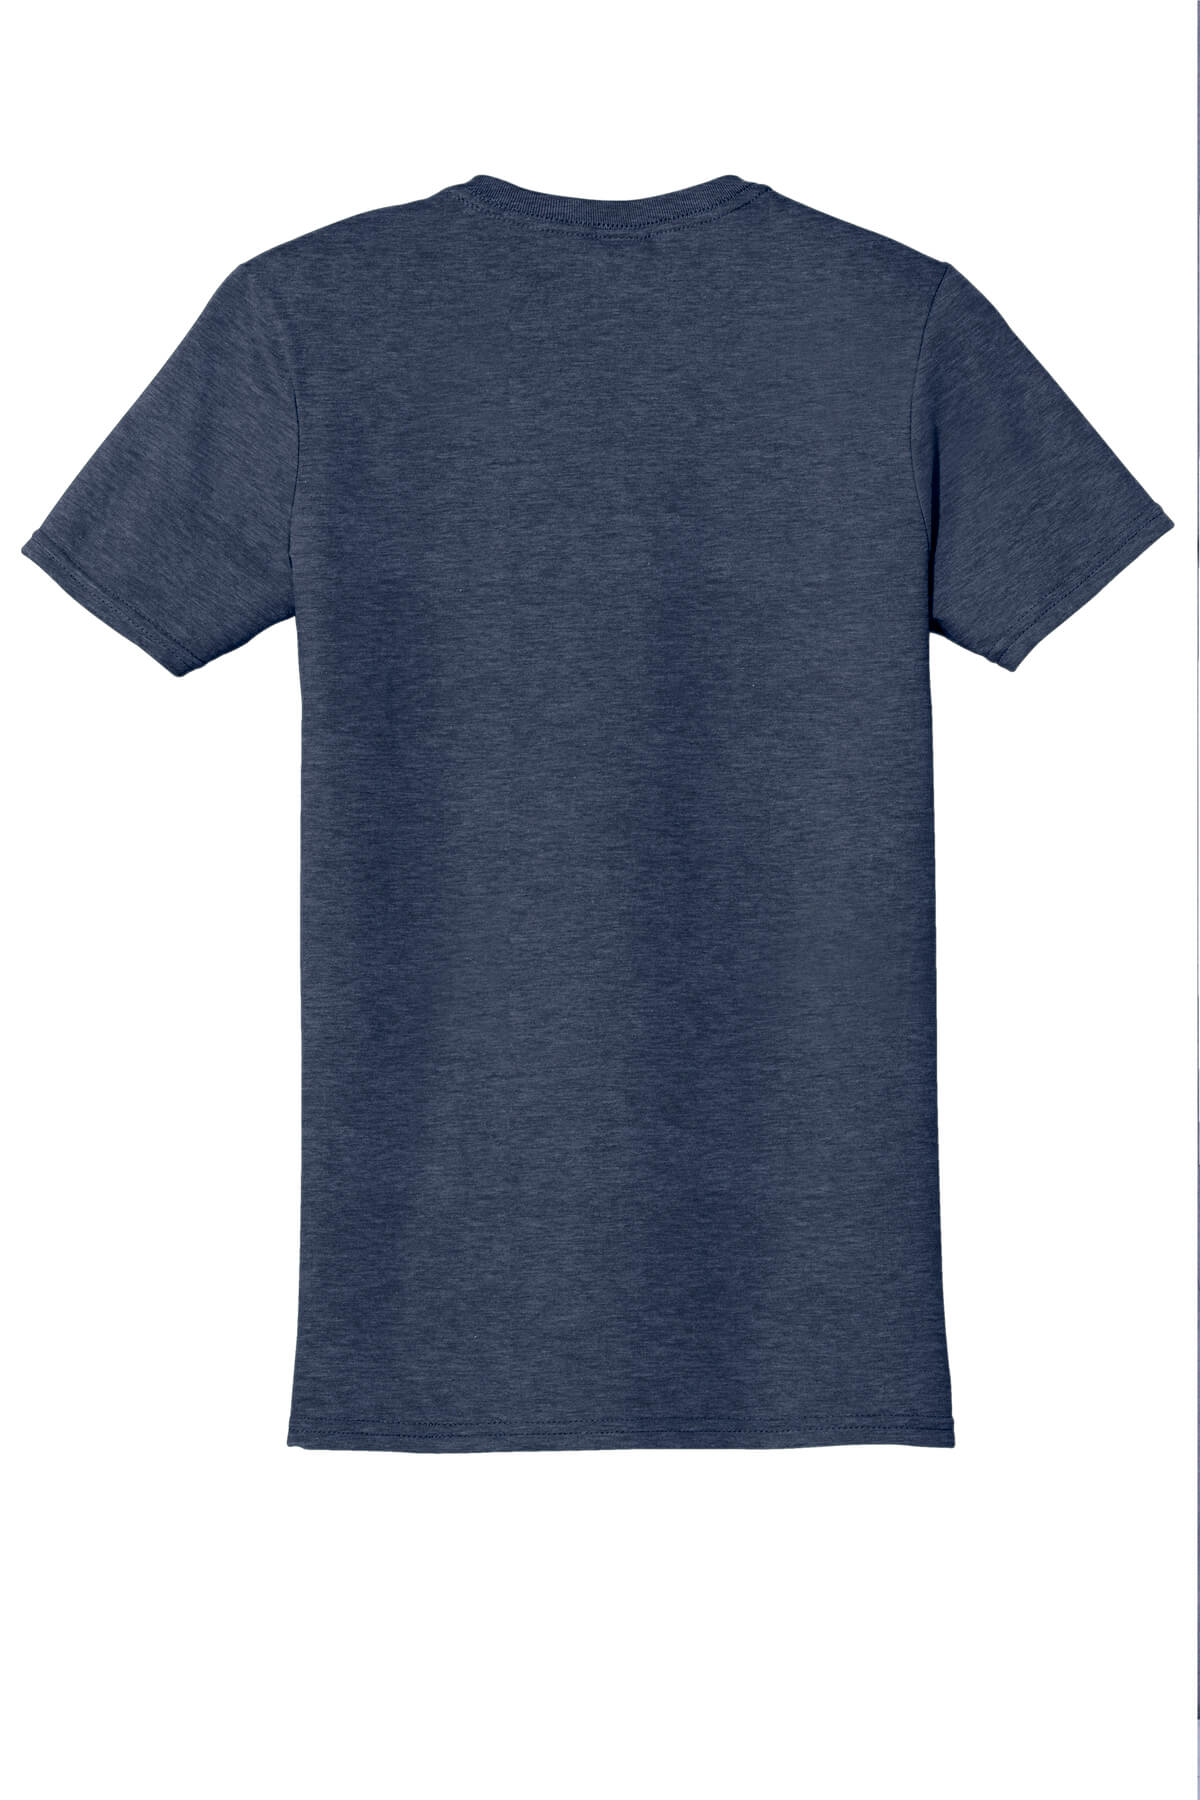 Heather Navy T-Shirt Back